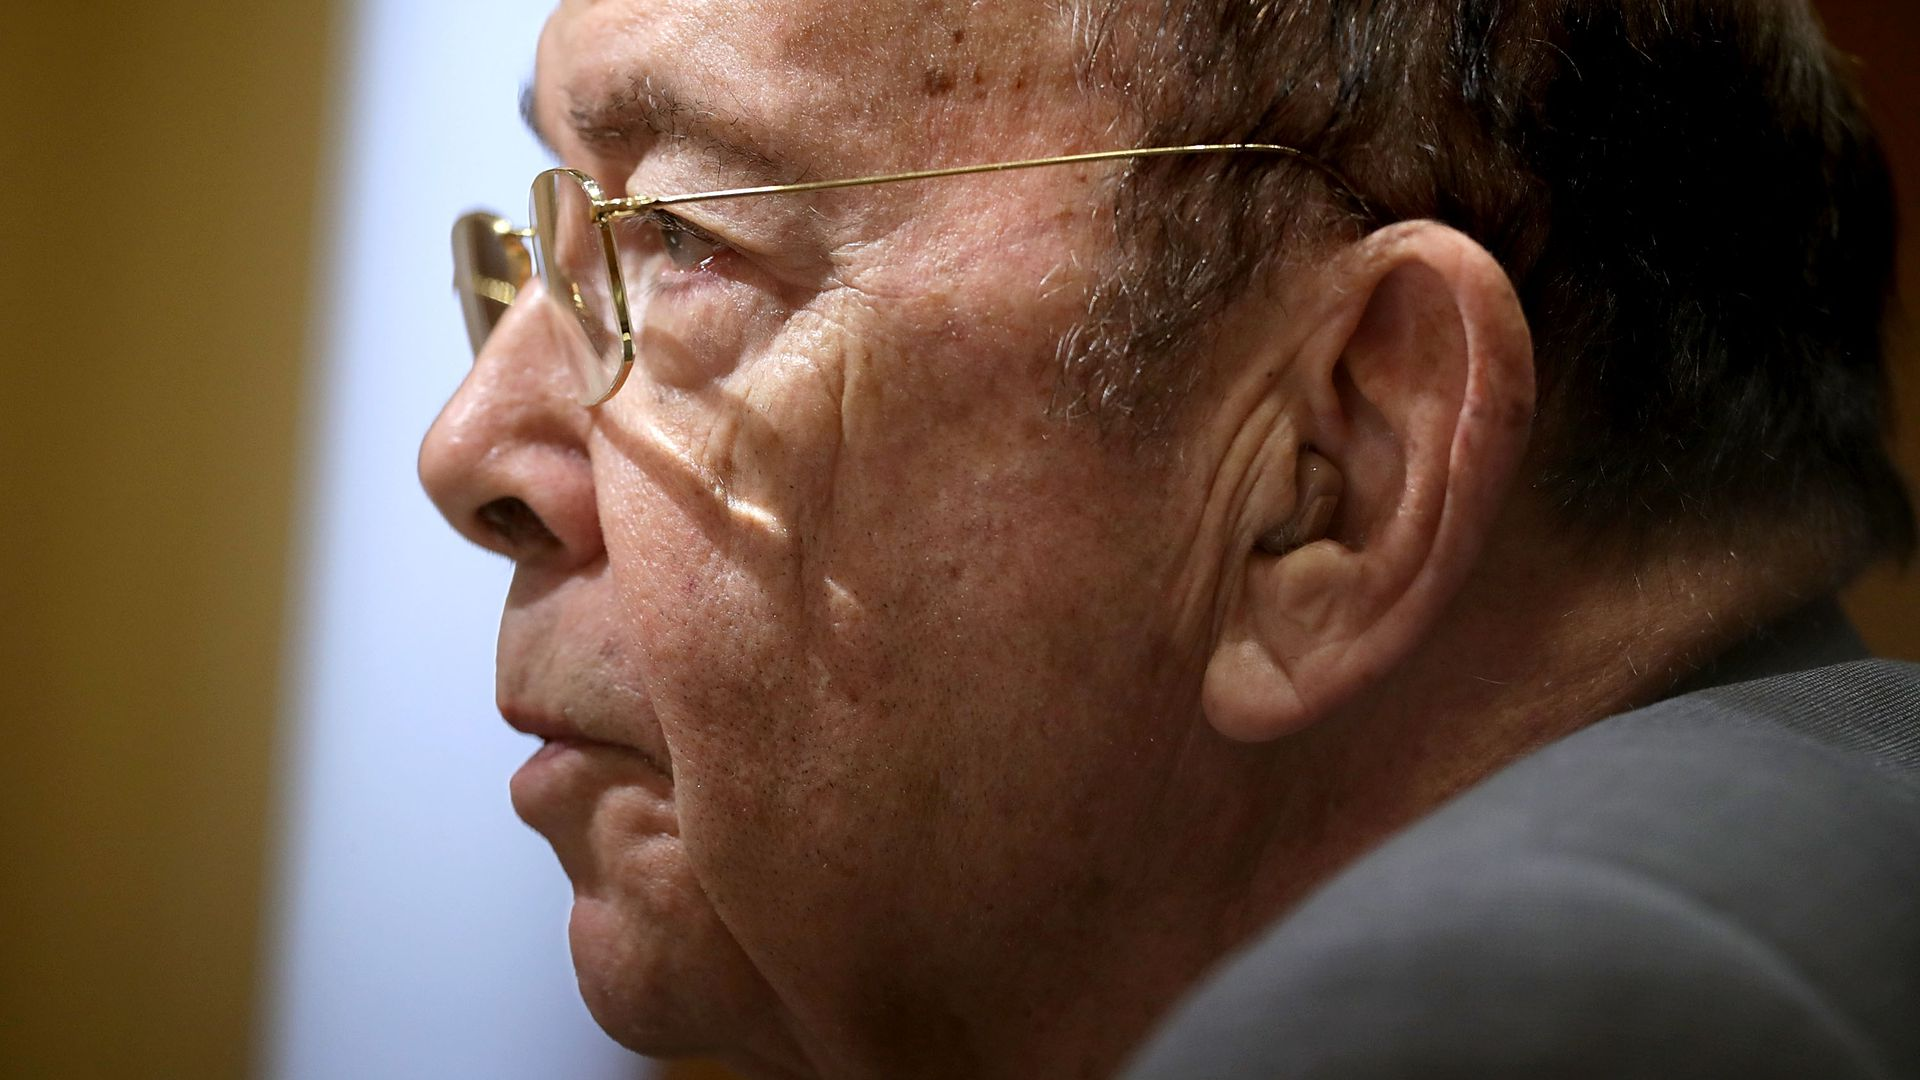 Close up of wilbur ross's face. Bald white man with glasses.